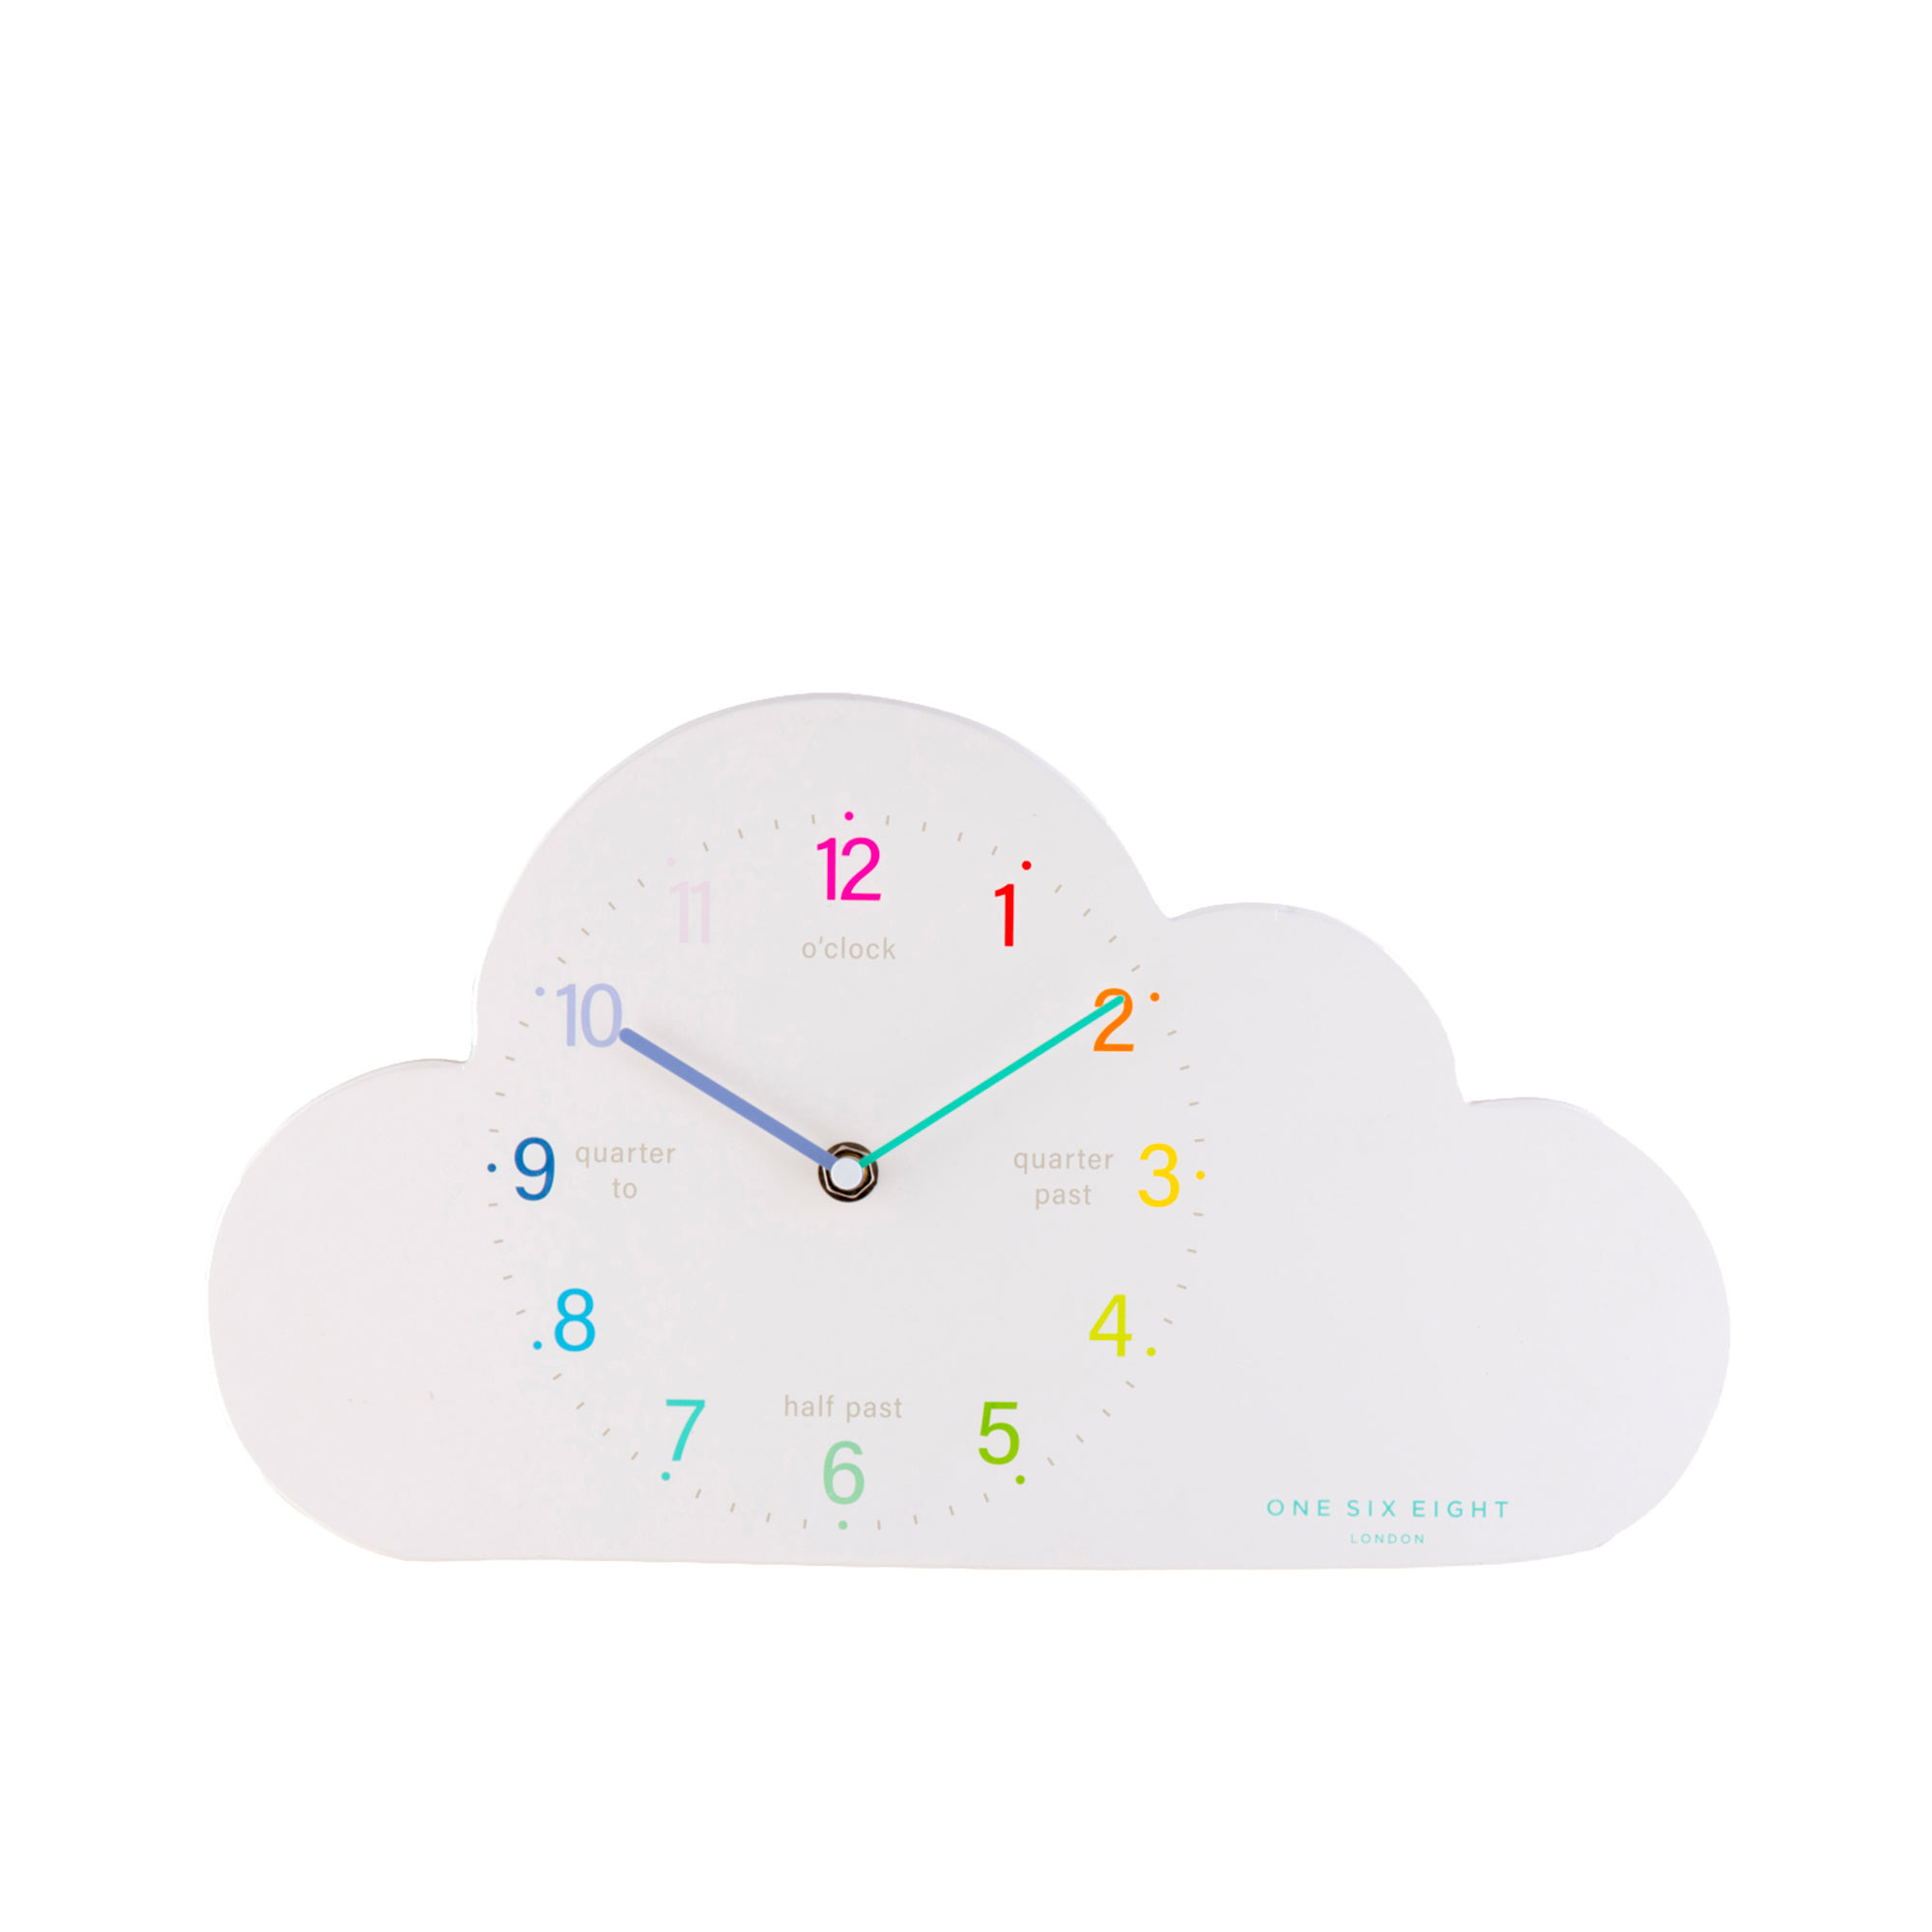 One Six Eight London Cloud Wall Clock 22x35cm White